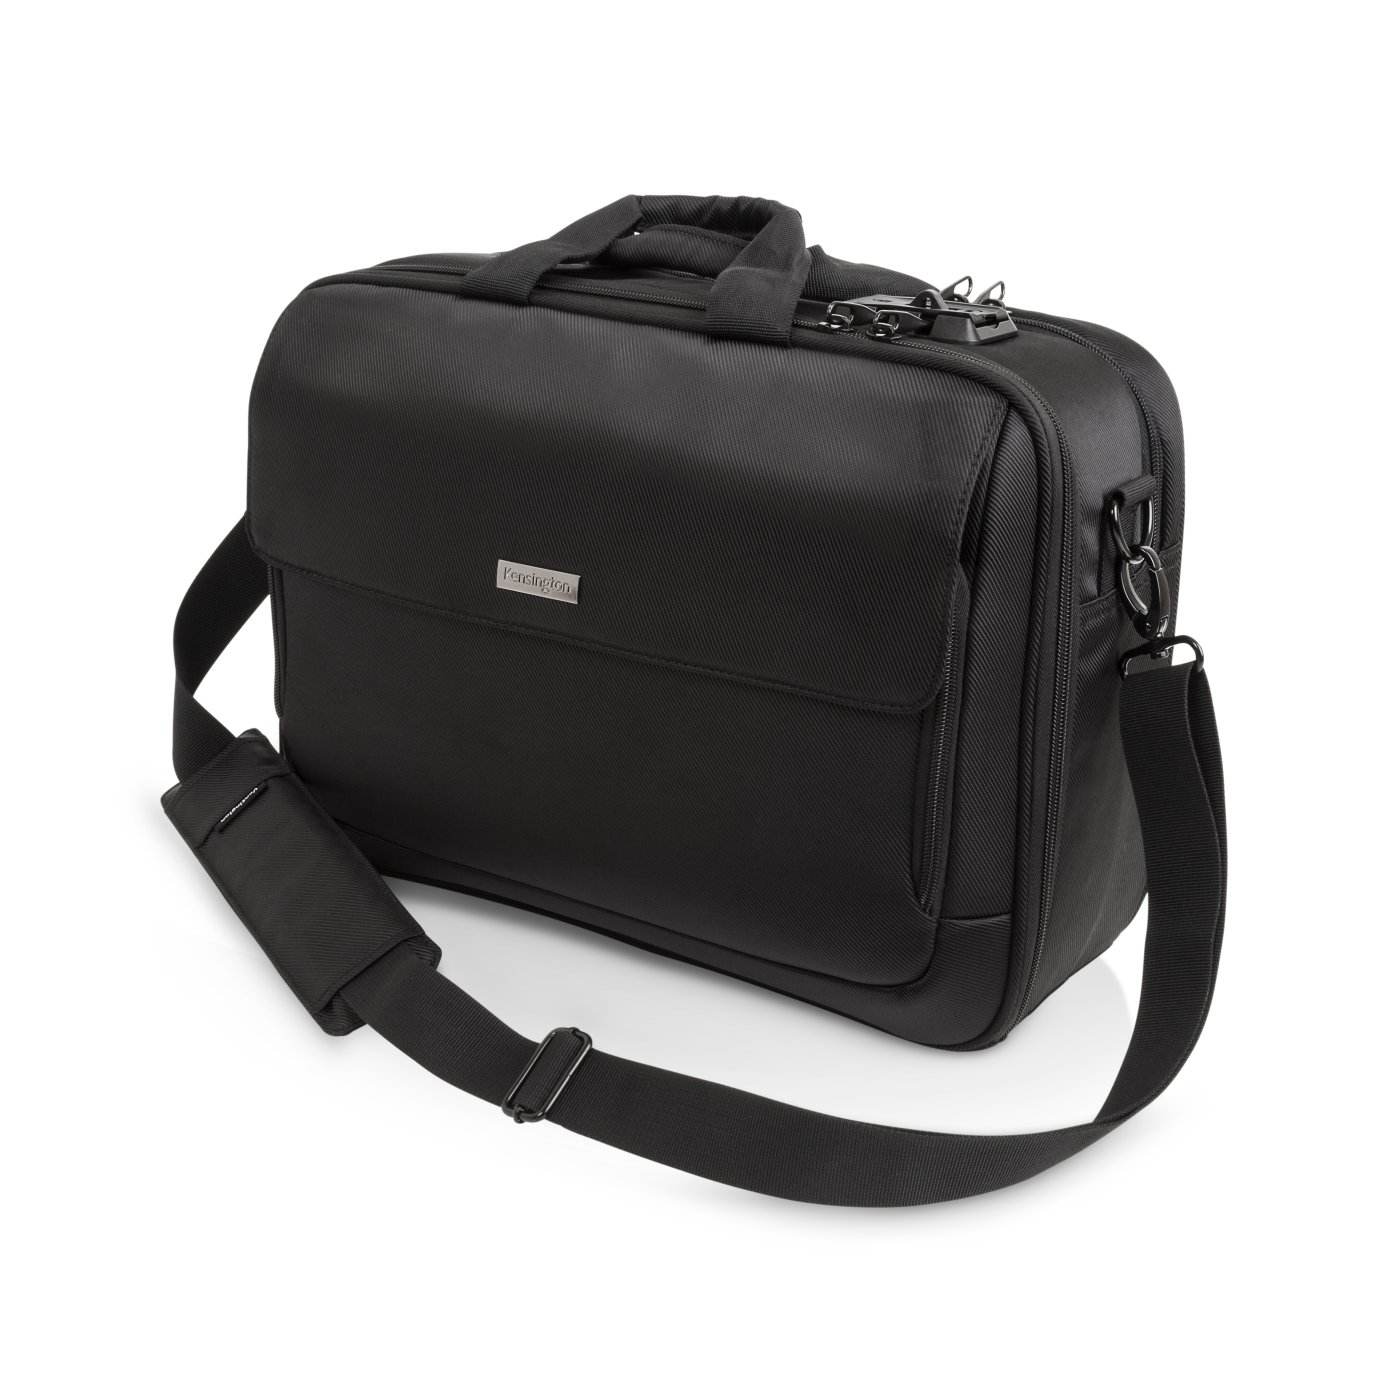 Kensington - Products - Laptop Bags - Briefcases / Totes ...